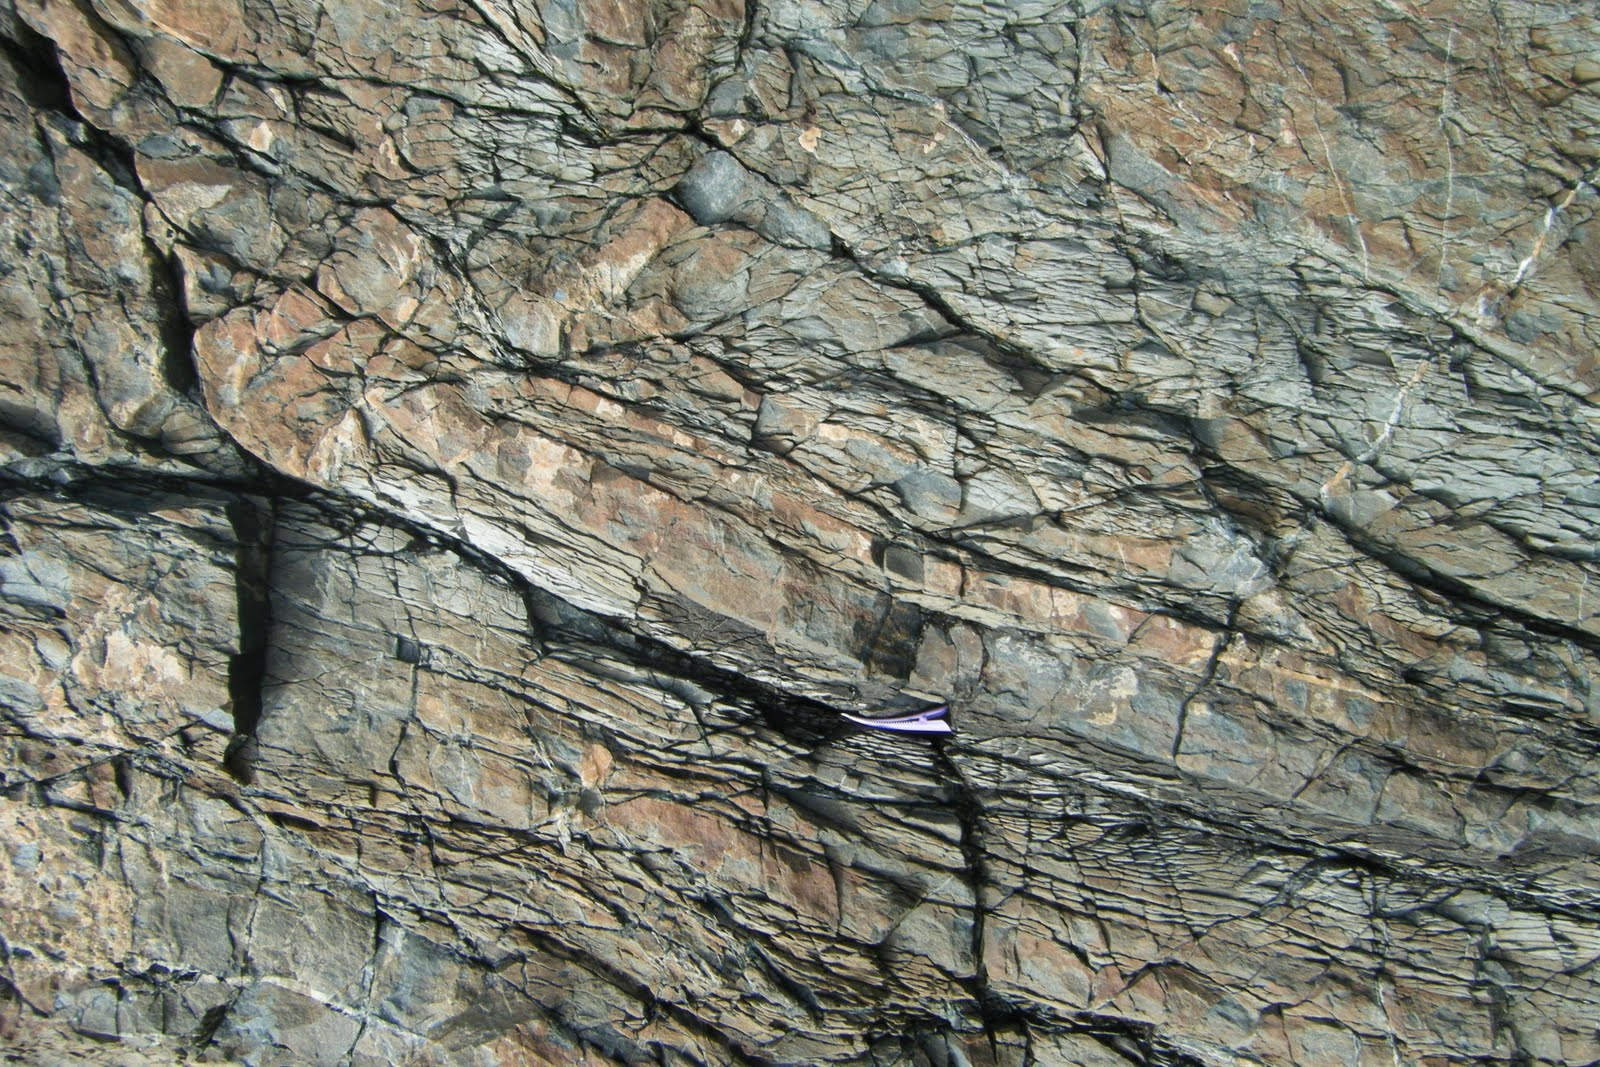 geologists use radioactive dating to do what